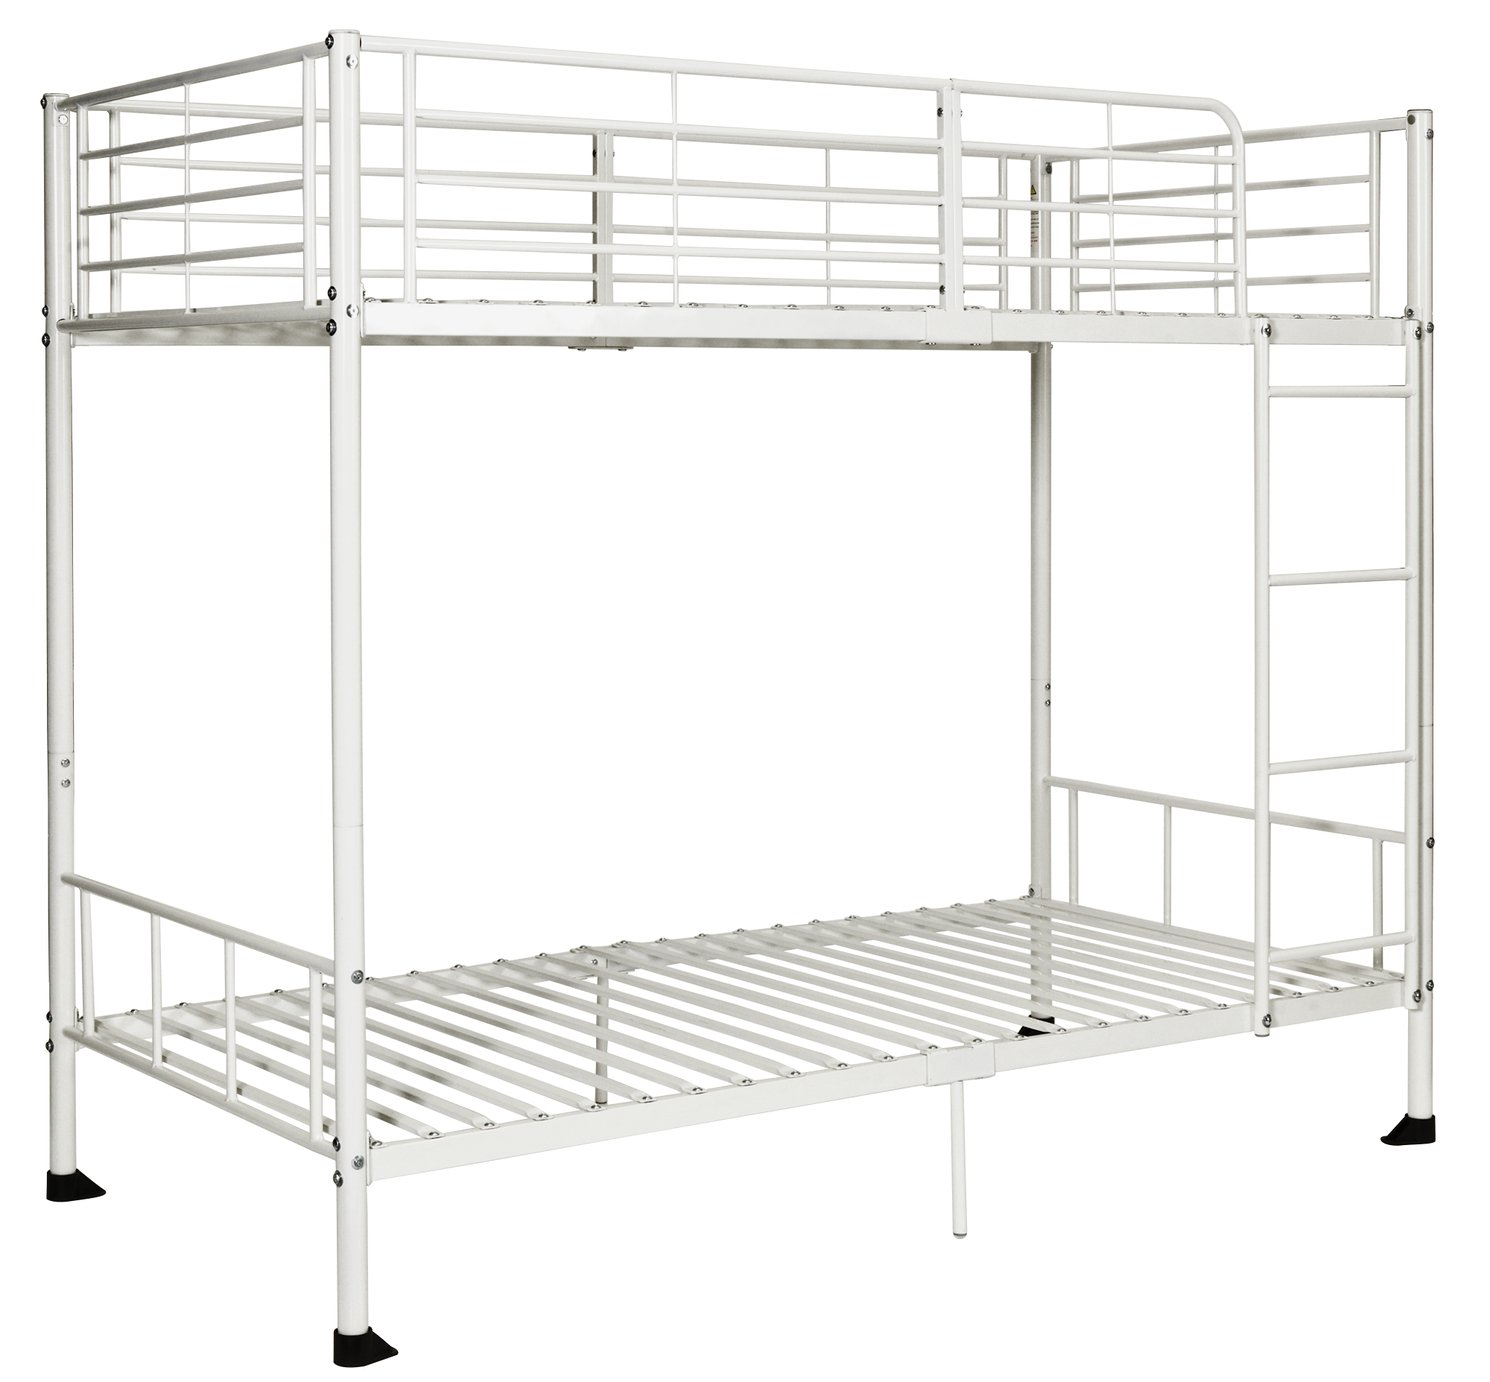 Picture of: Argos Home Maddison Single Bunk Bed Frame White 7986110 Argos Price Tracker Pricehistory Co Uk